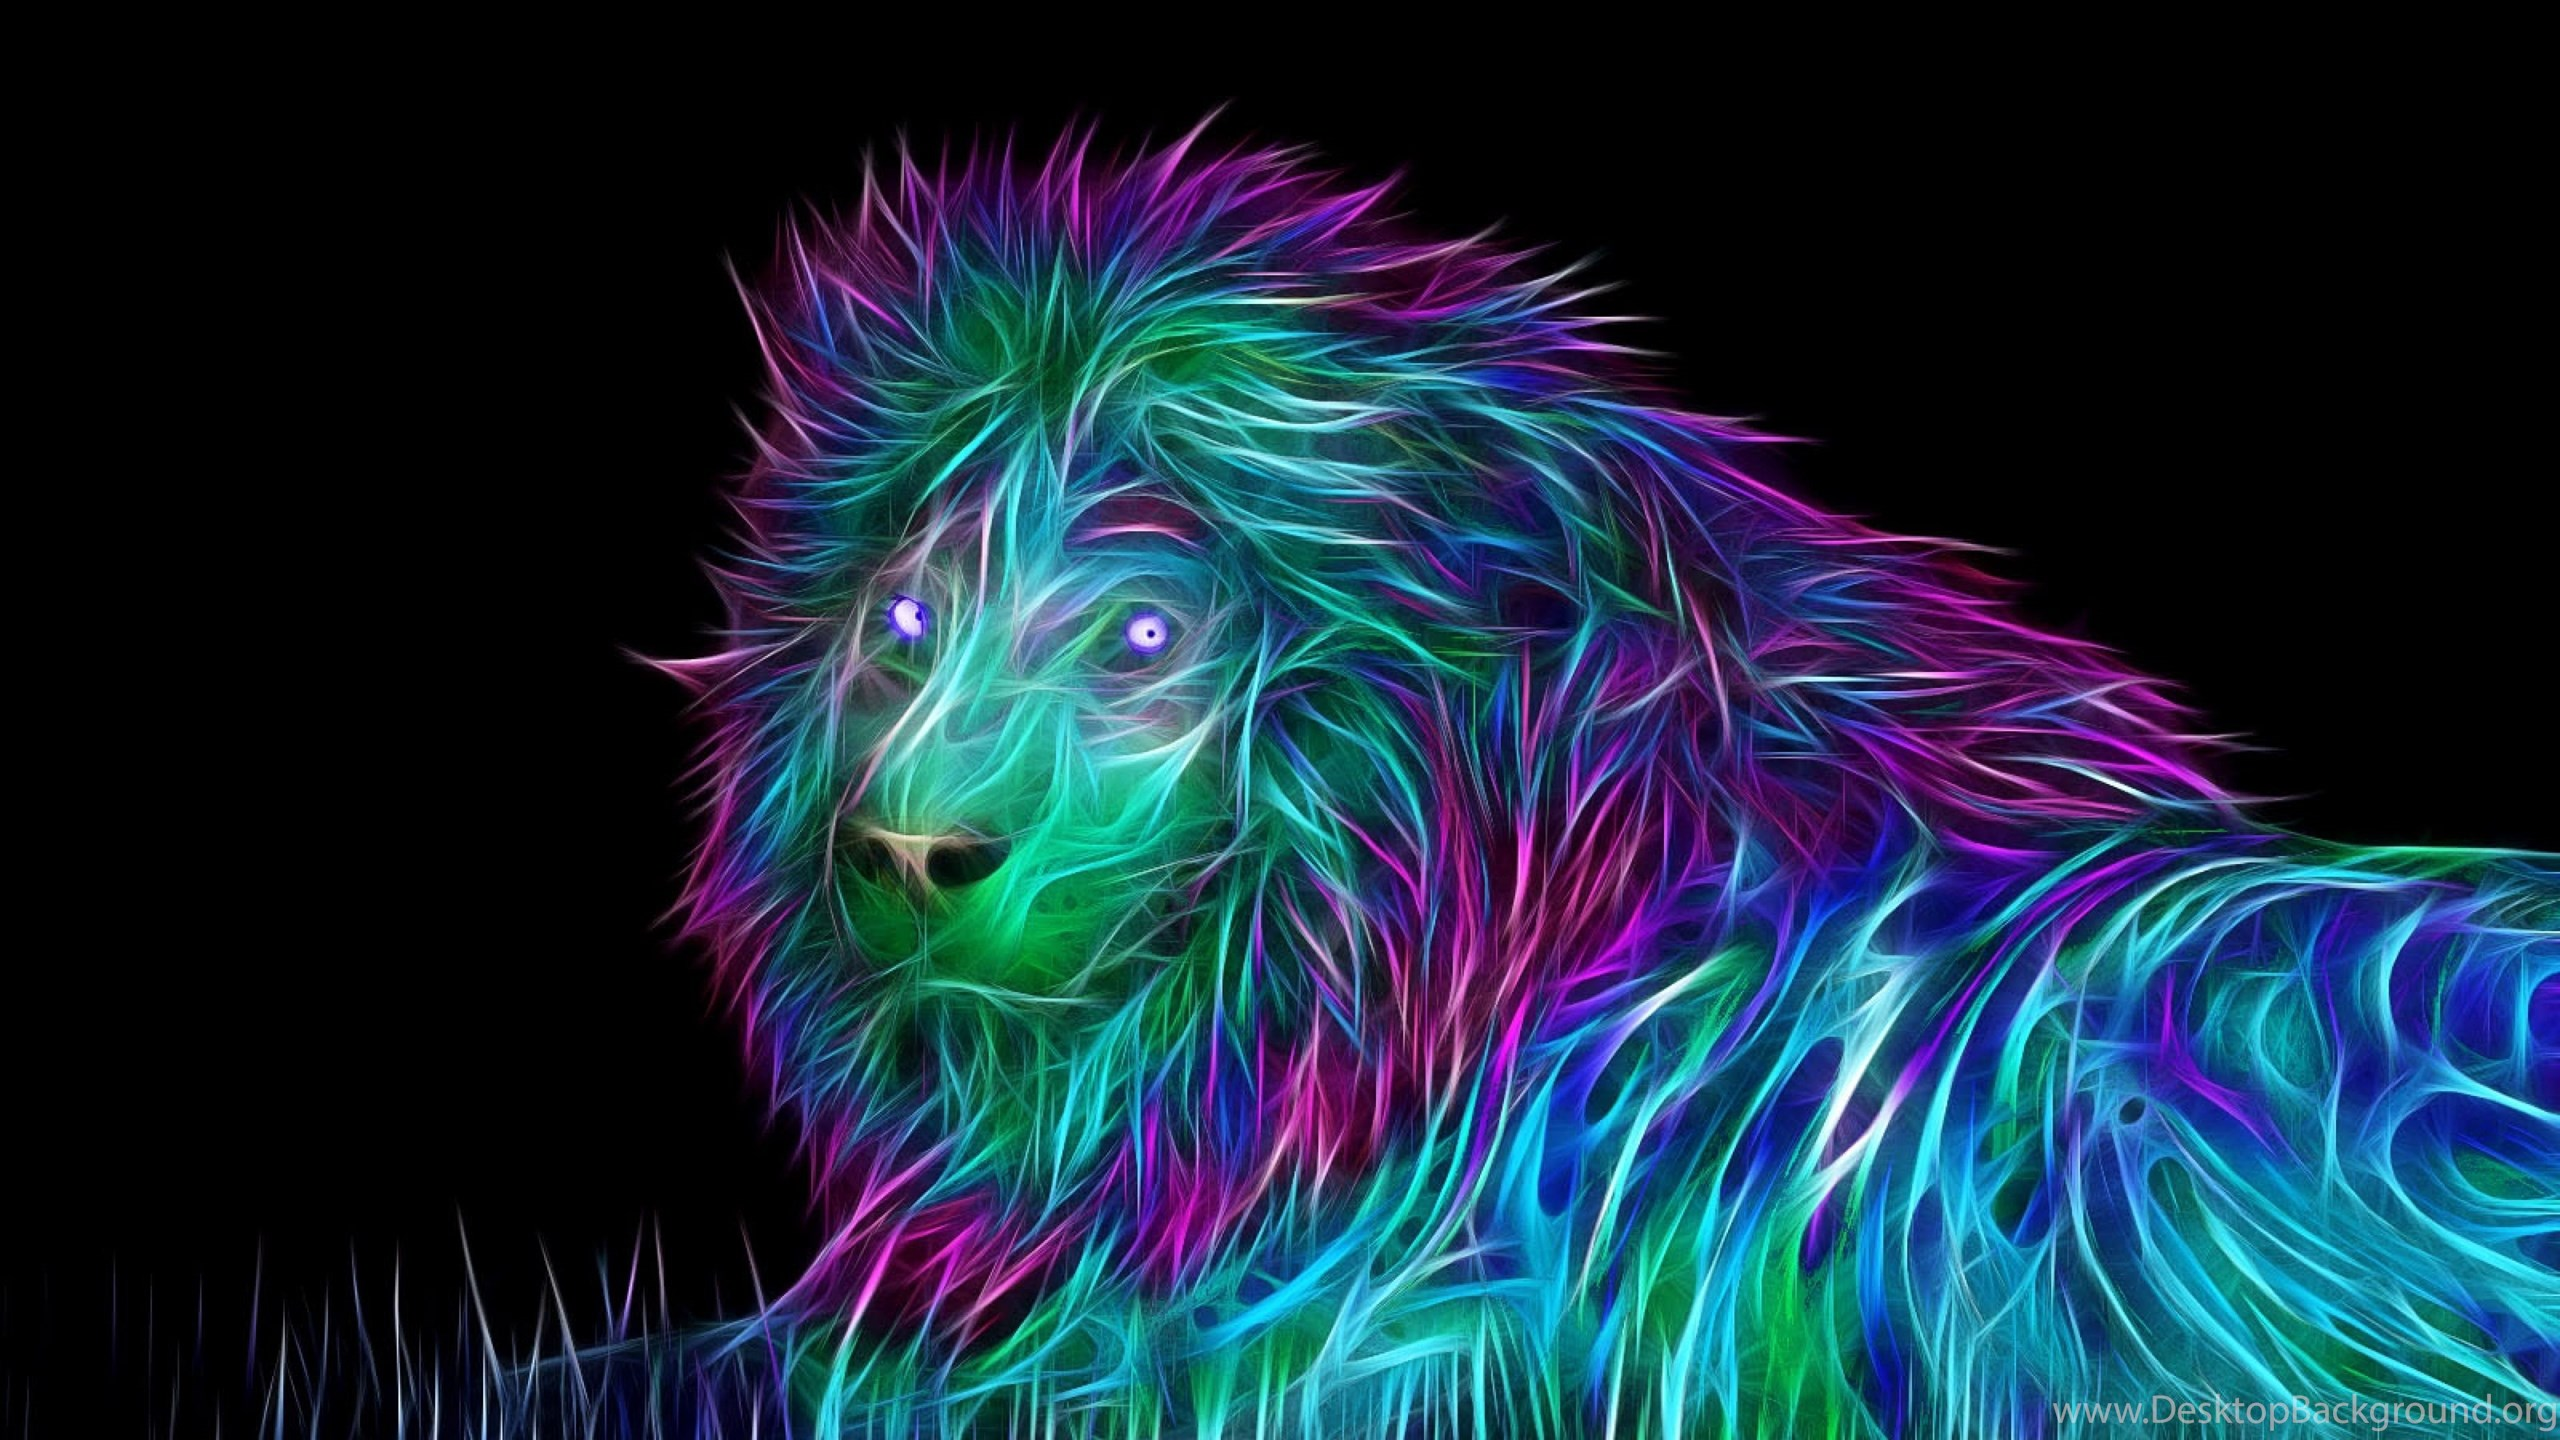 Download Wallpapers 3840x2160 Abstract, 3d, Art, Lion 4K ...